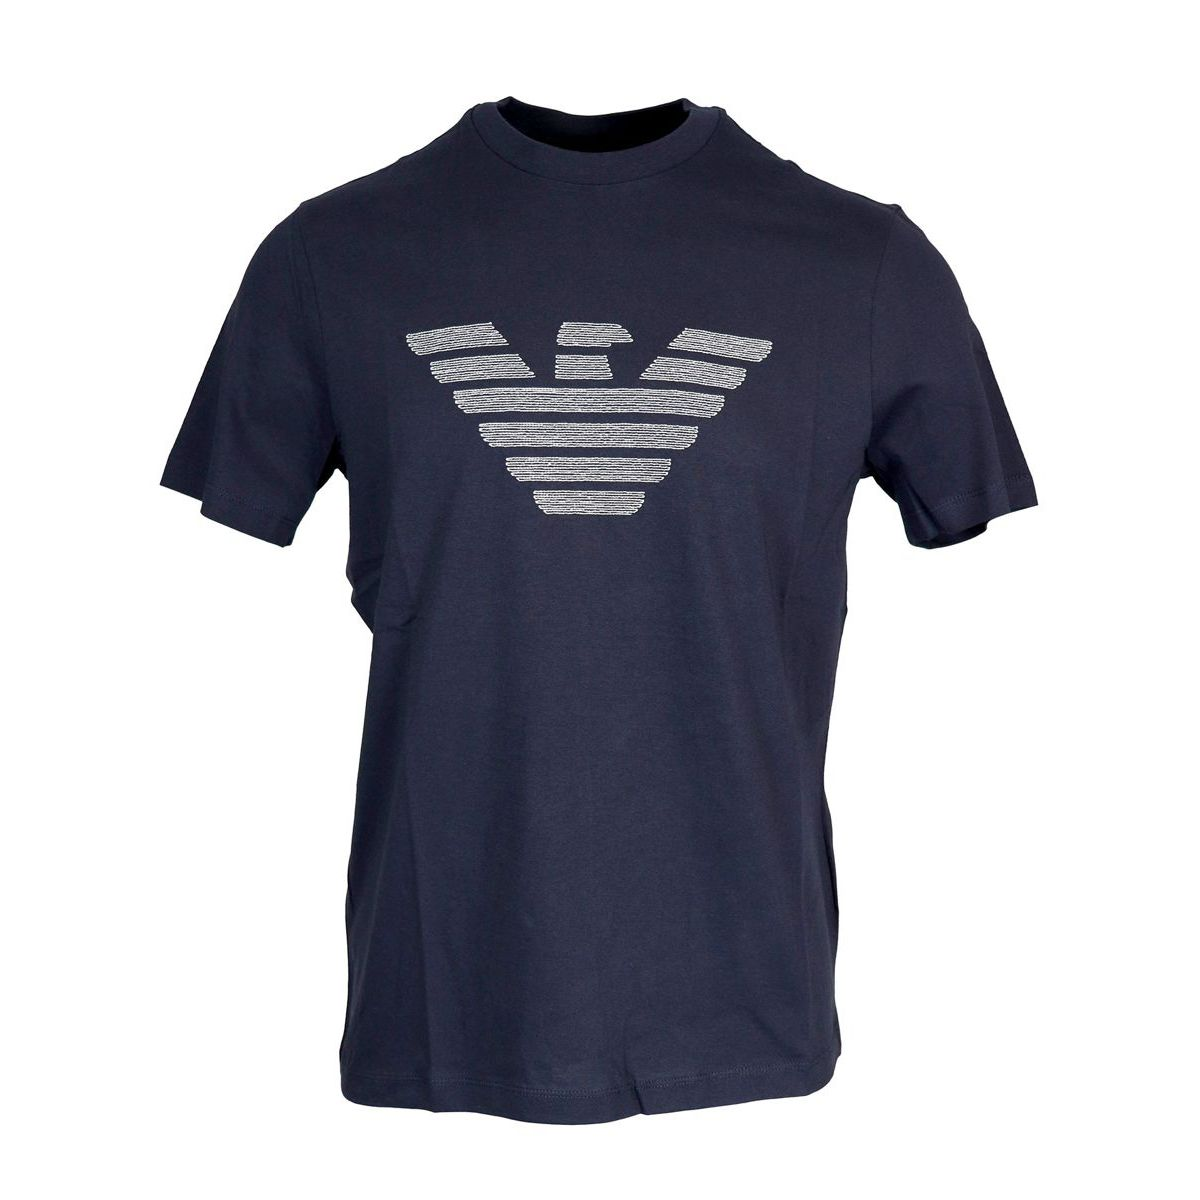 Cotton T-shirt with maxi logo Navy Emporio Armani